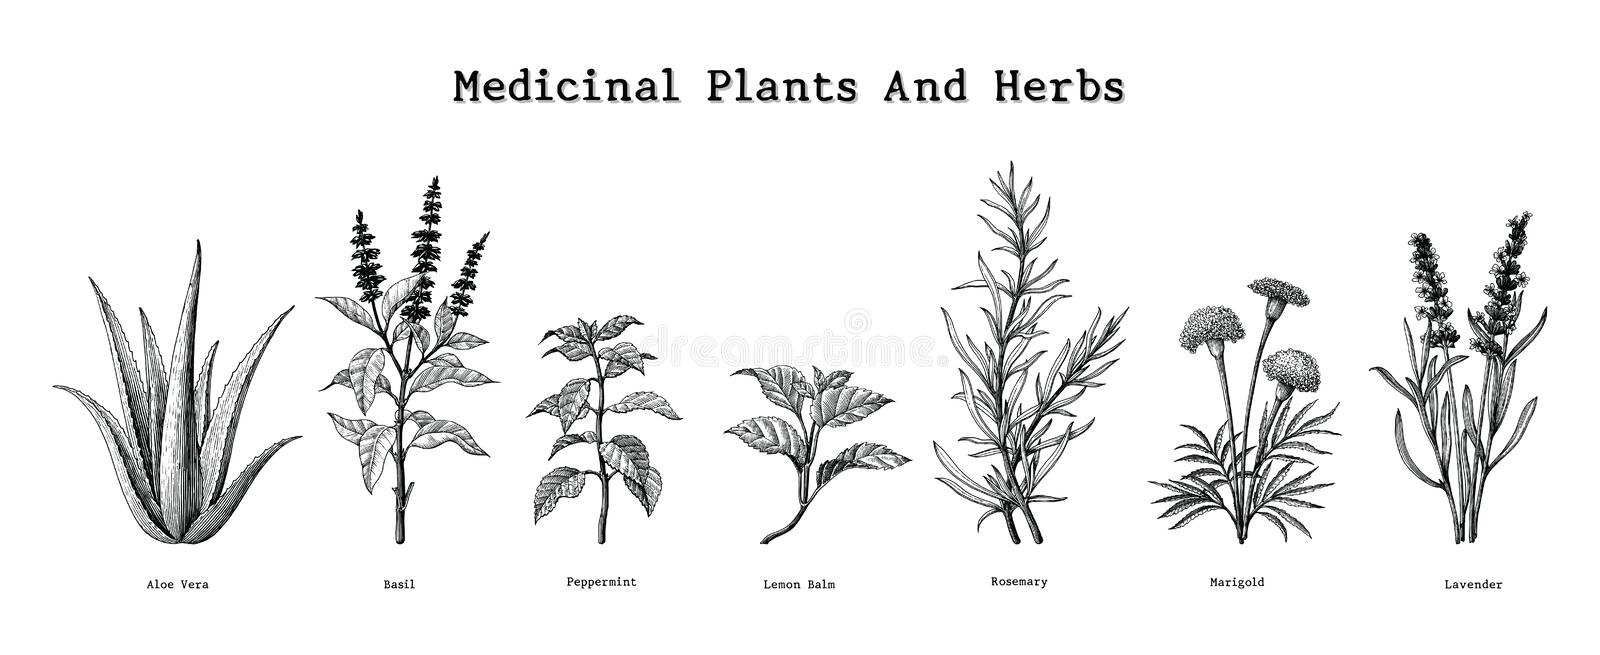 Medicinal plants and herbs hand drawing vintage engraving illustration vector illustration